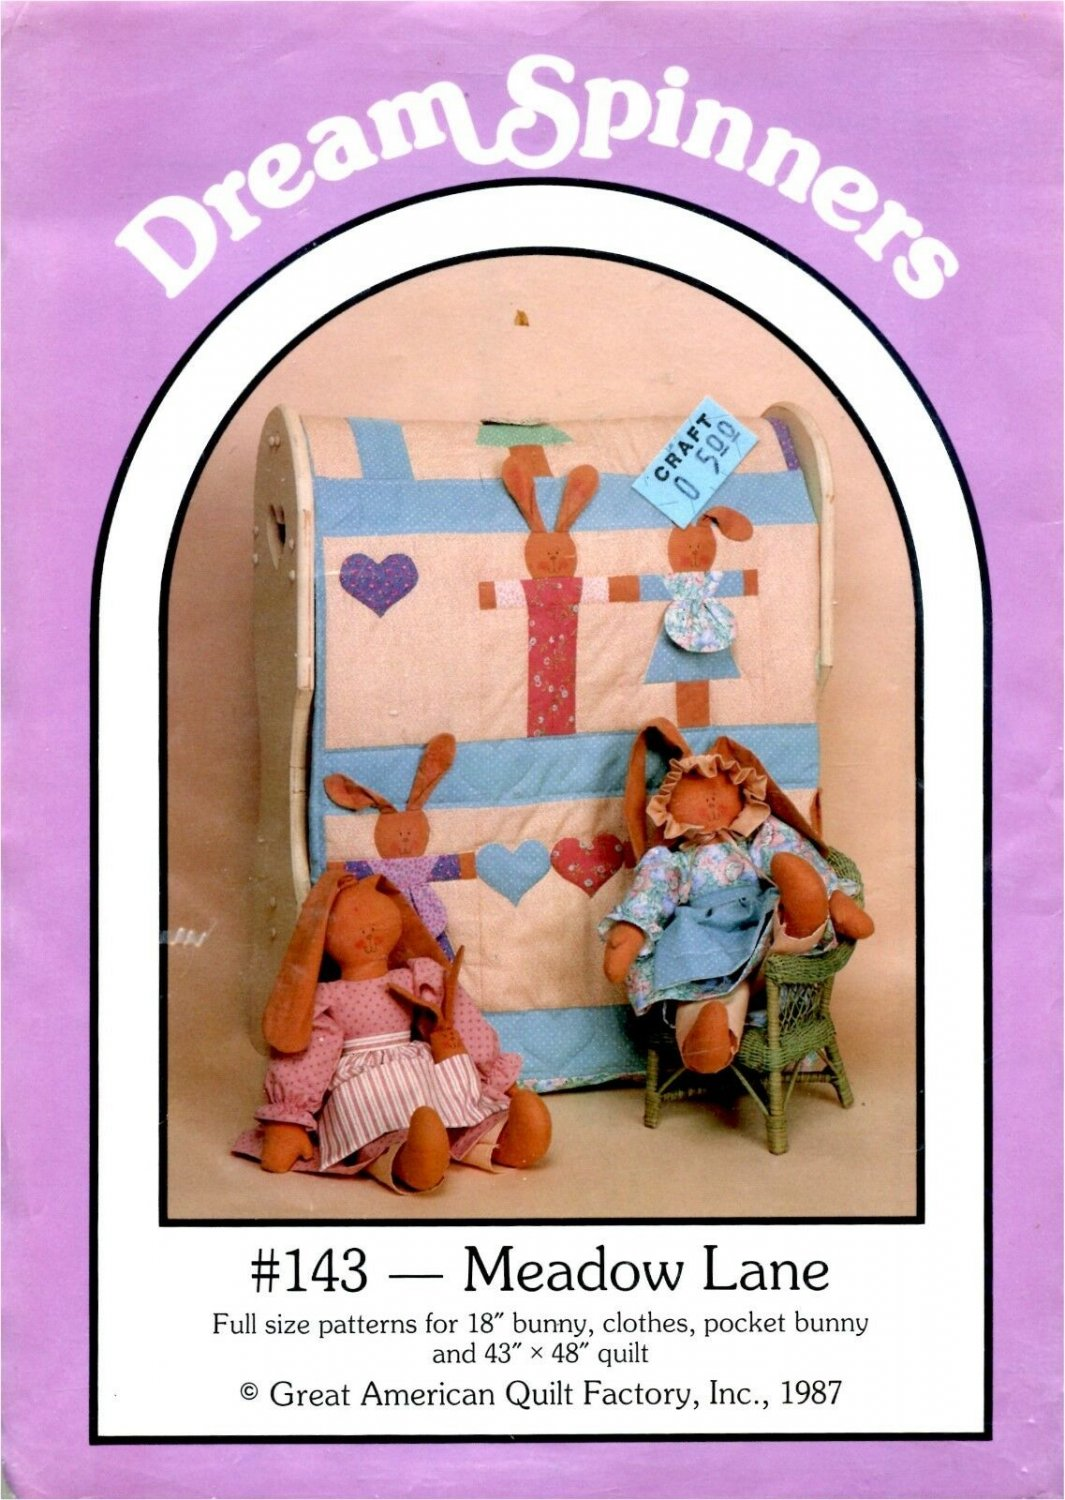 """Meadow Lane 18"""" Bunny, Clothes, Pocket Bunny & 43x48 Quilt Pattern DreamSpinners"""